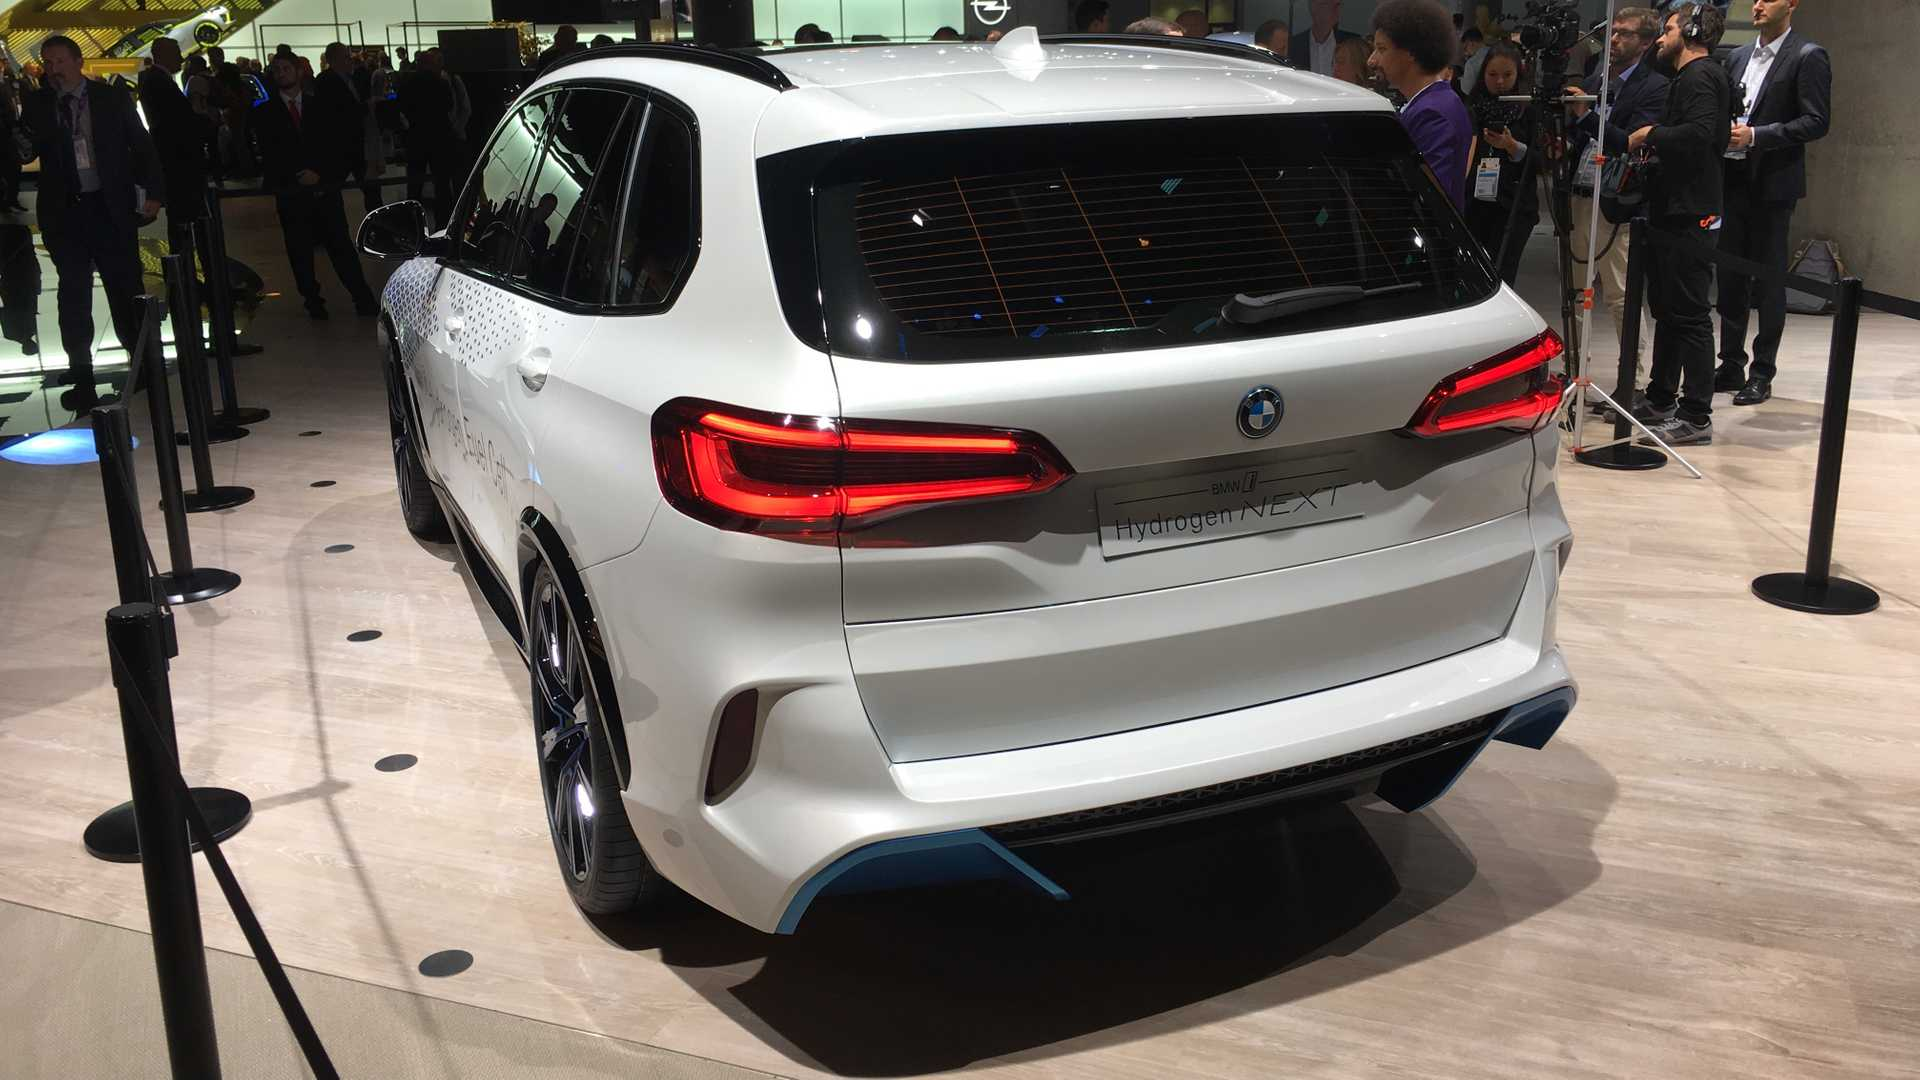 BMW iNext X5 fuel cell